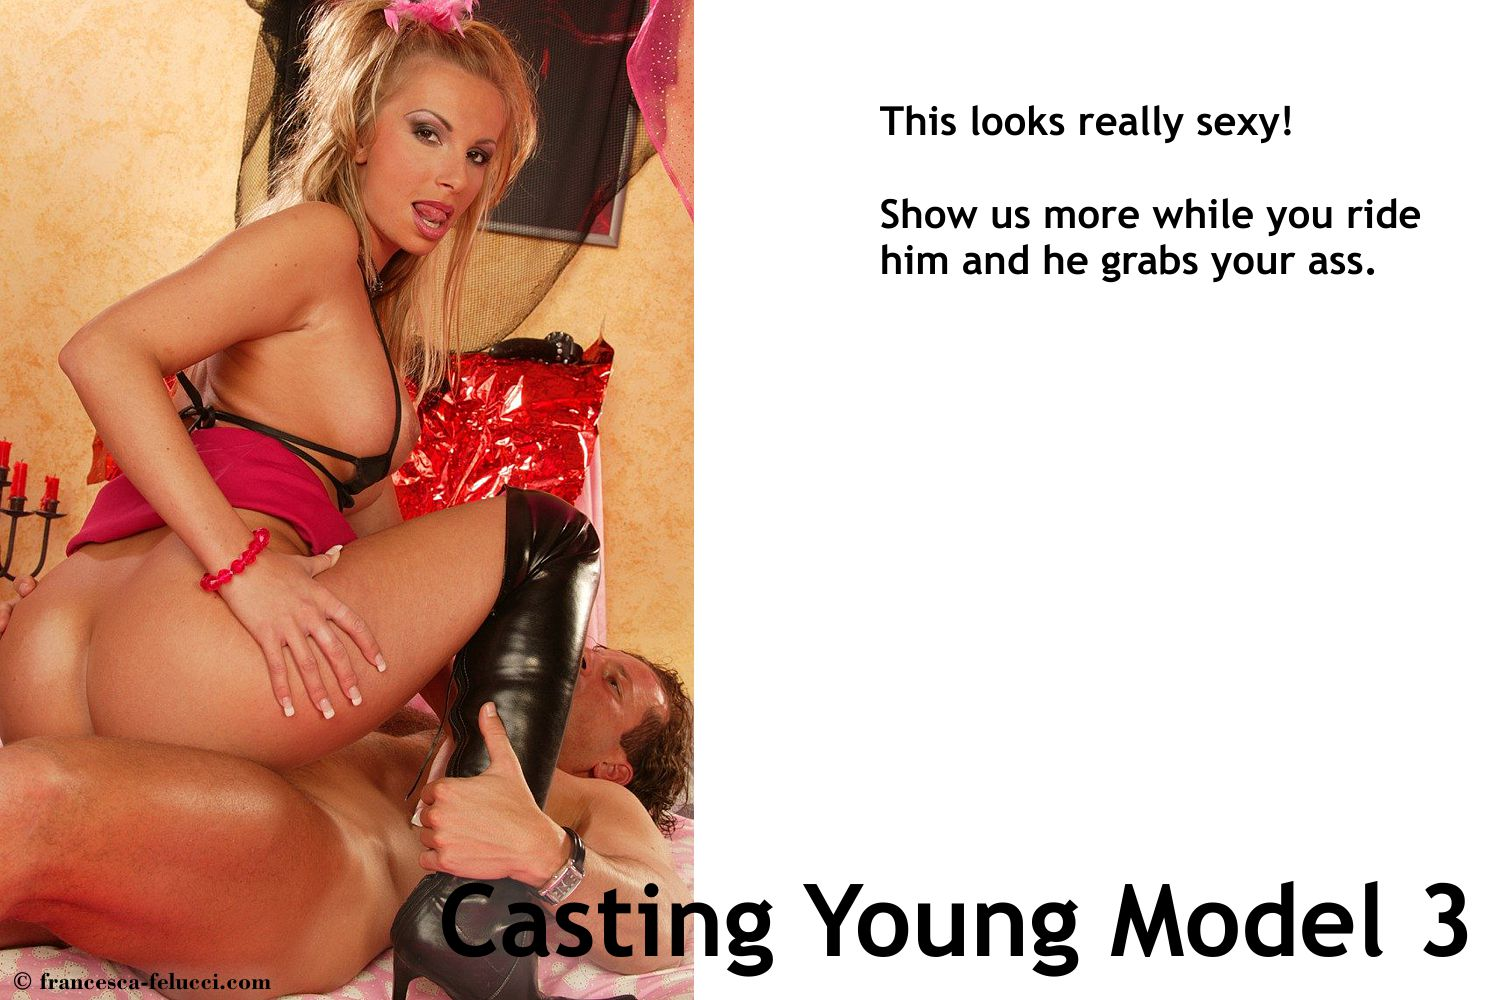 casting_young_model_3_017